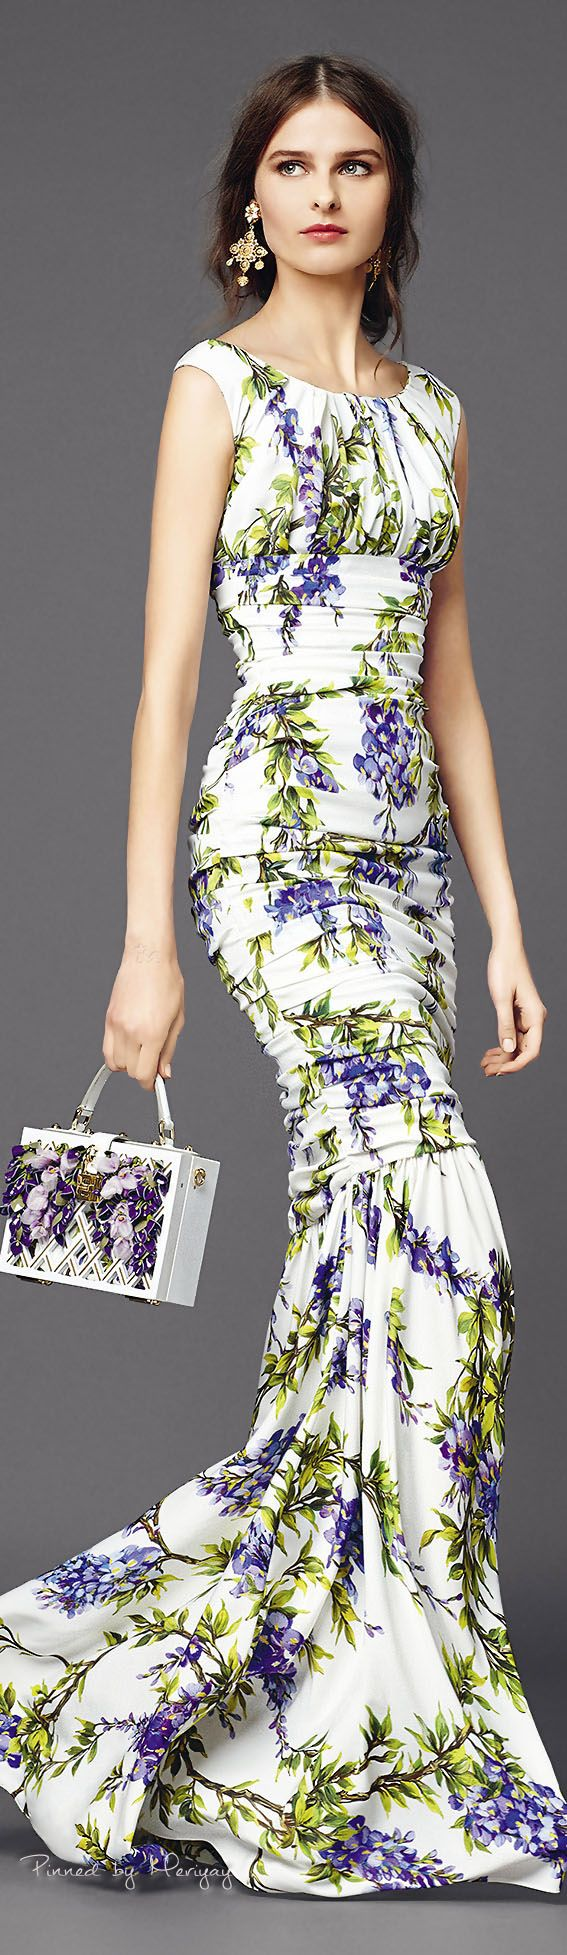 Dolce & Gabbana.~ Sleeveless Floral Maxi Dress 2015